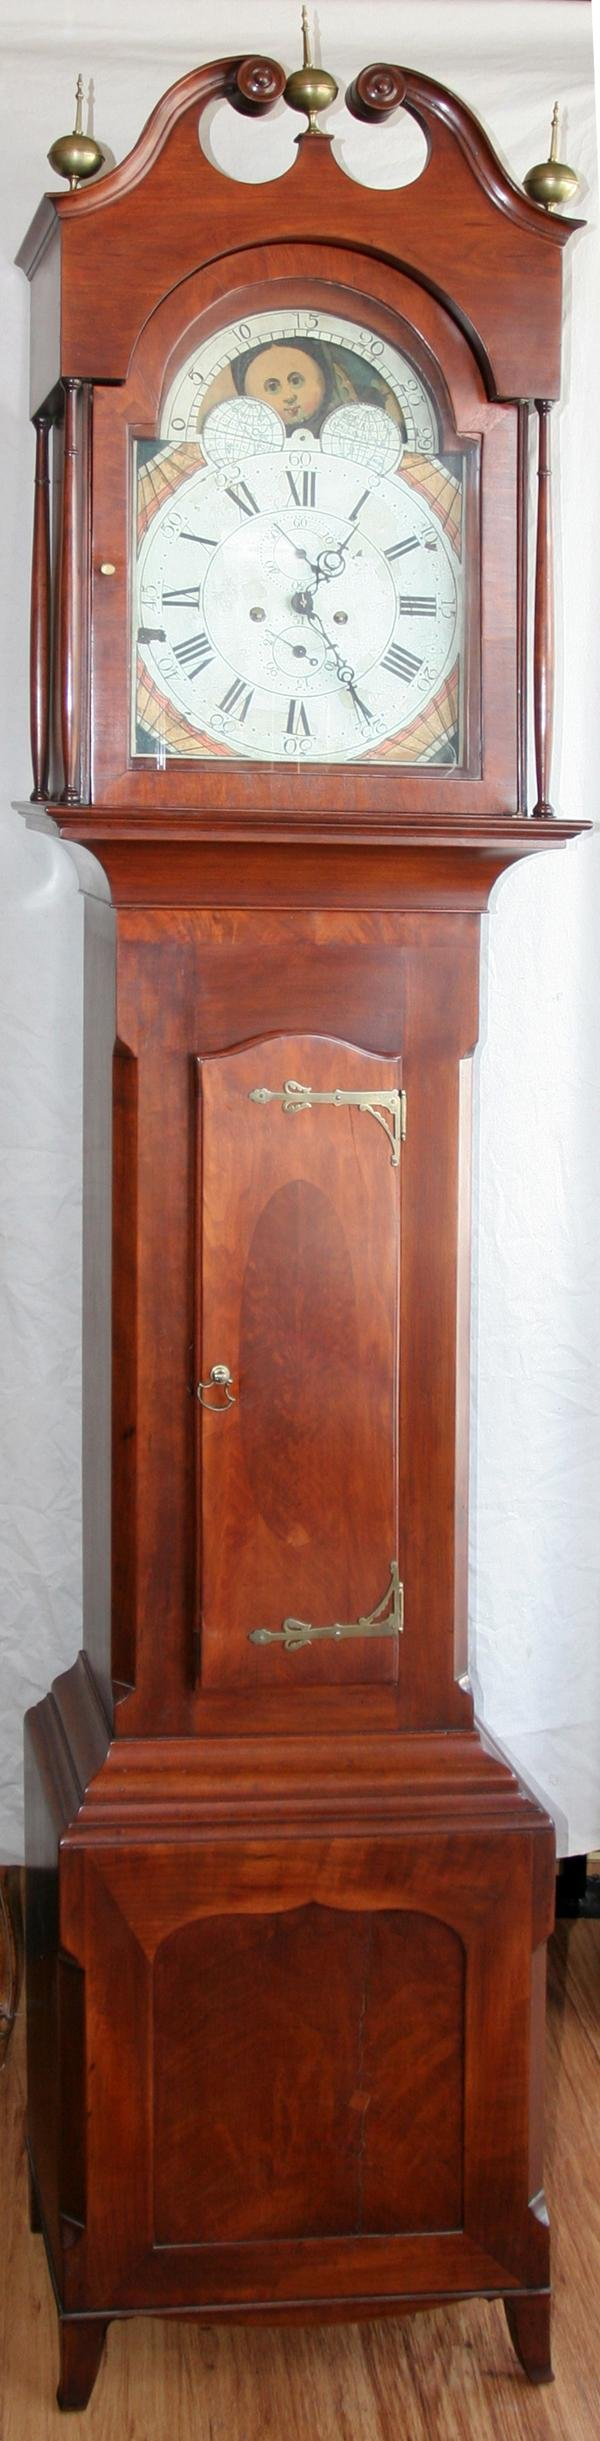 081007: ENGLISH MAHOGANY TALL CASE CLOCK C. 1810, H 93""